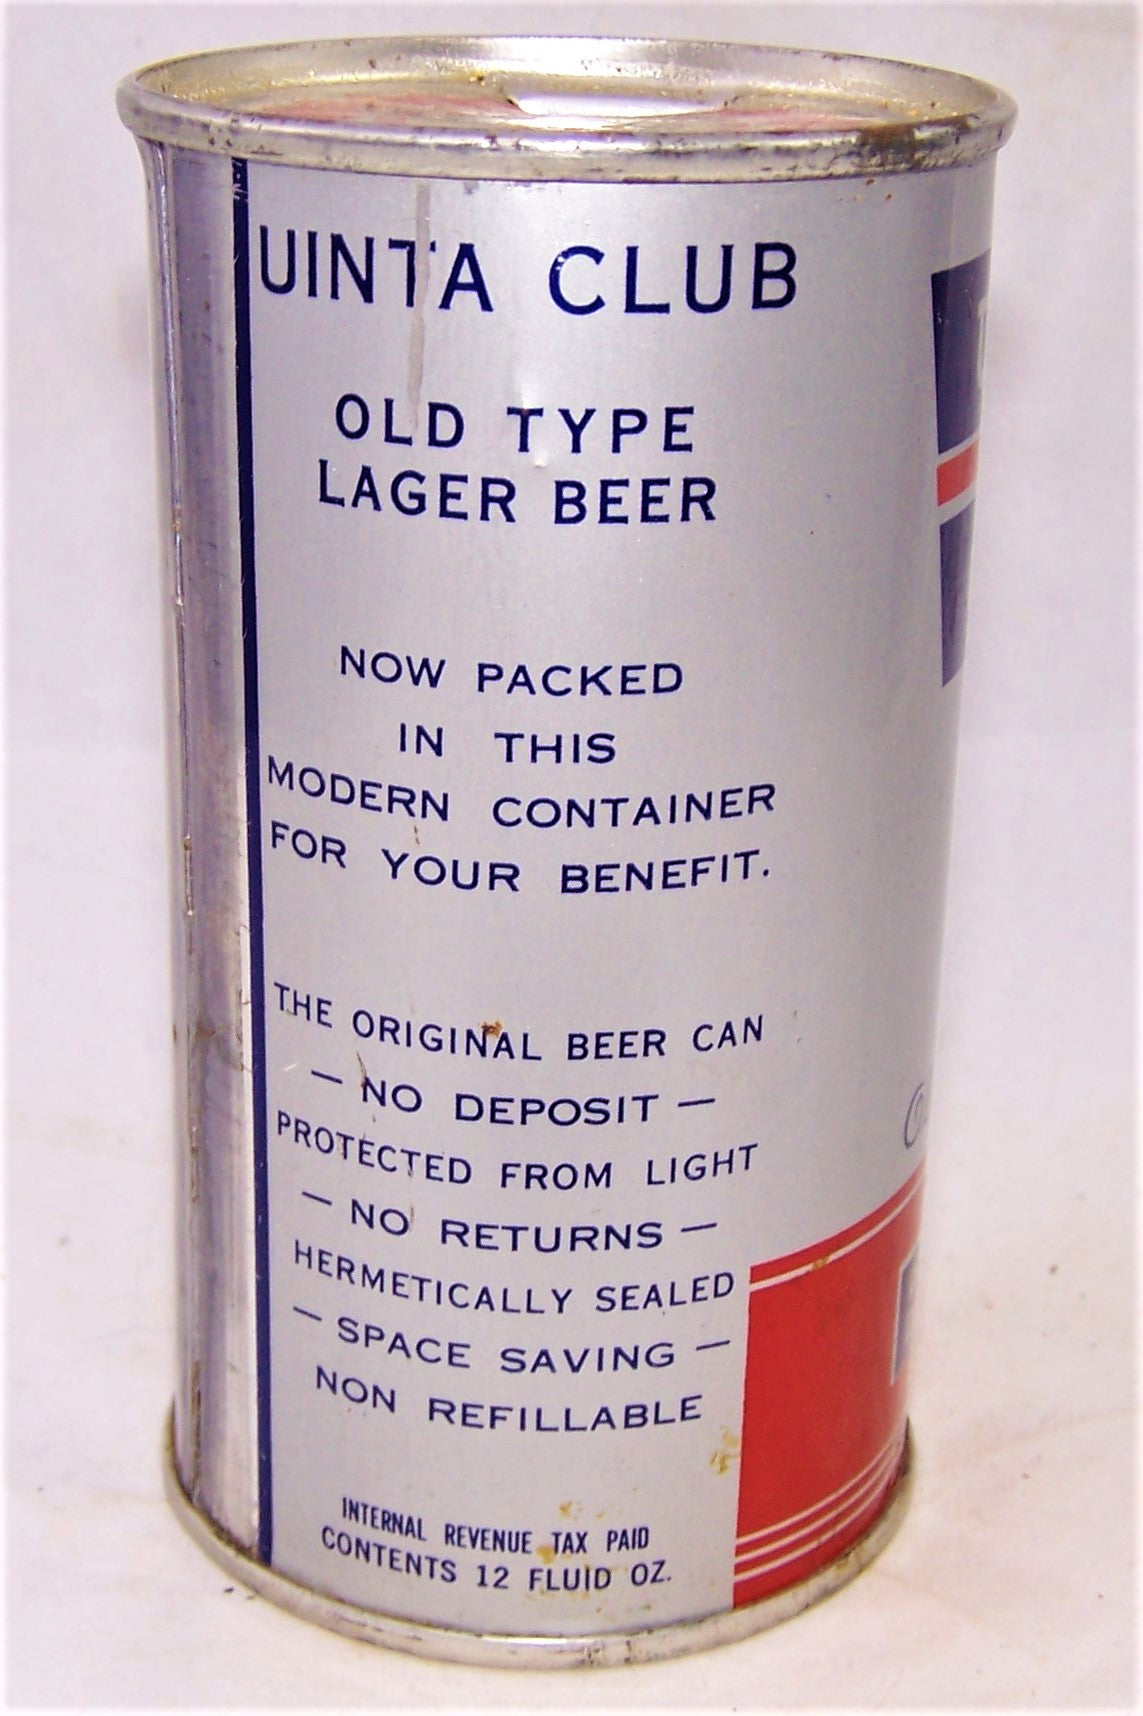 Uinta Club Old Type Lager Beer, Lilek # 823, and USBC 142-06, Grade 1/1+ Sold out